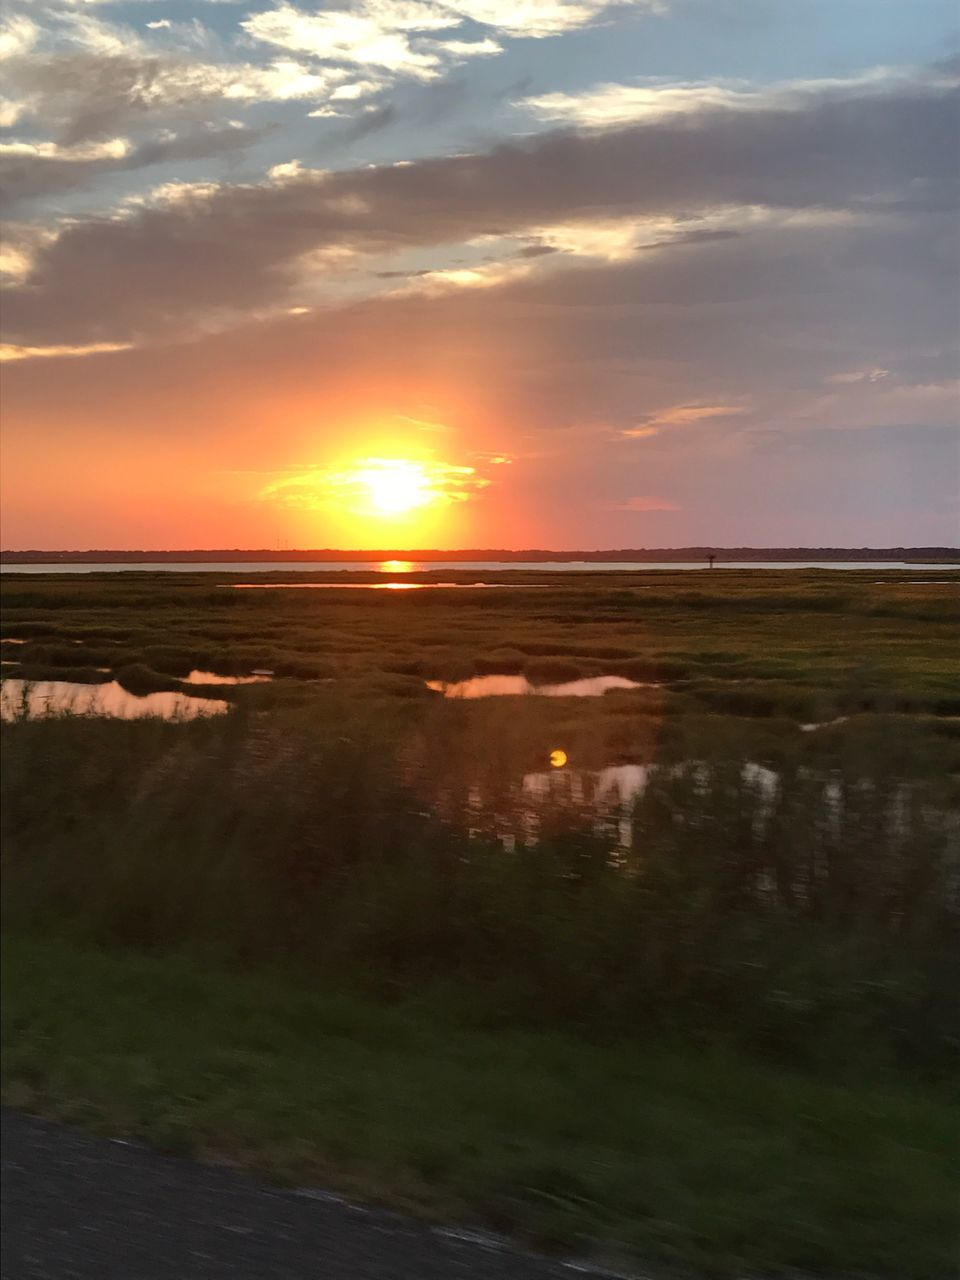 sunset, sun, scenics, nature, tranquil scene, beauty in nature, orange color, tranquility, sky, landscape, no people, cloud - sky, outdoors, water, field, sunlight, grass, day